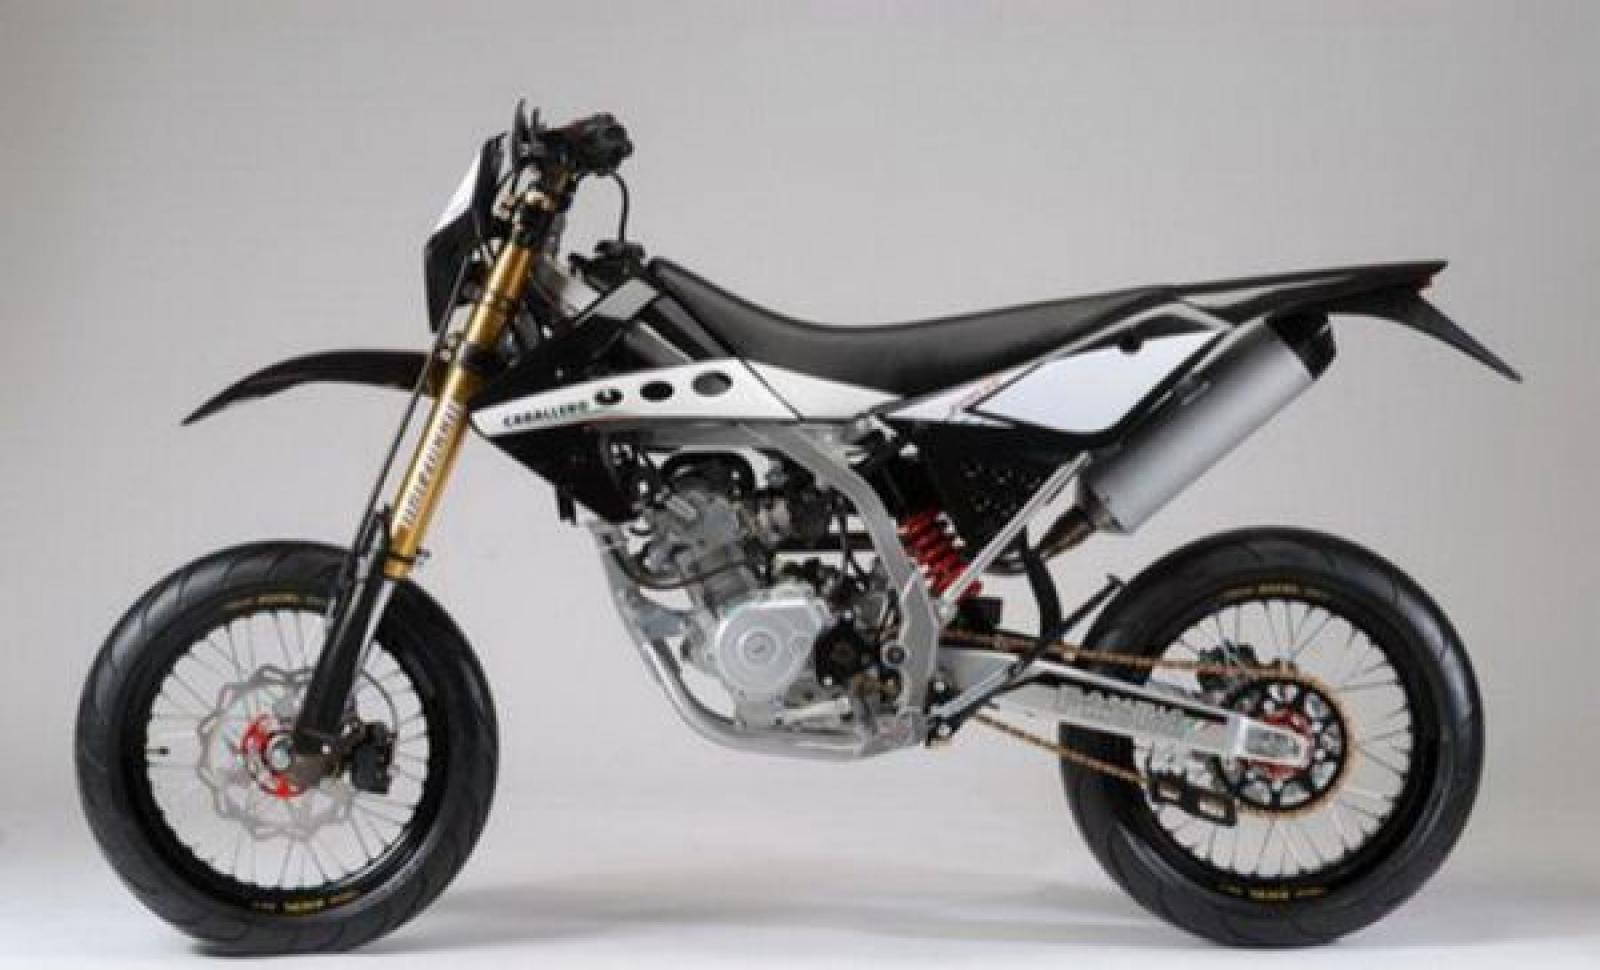 2009 Fantic Caballero Motard 125 Air #4